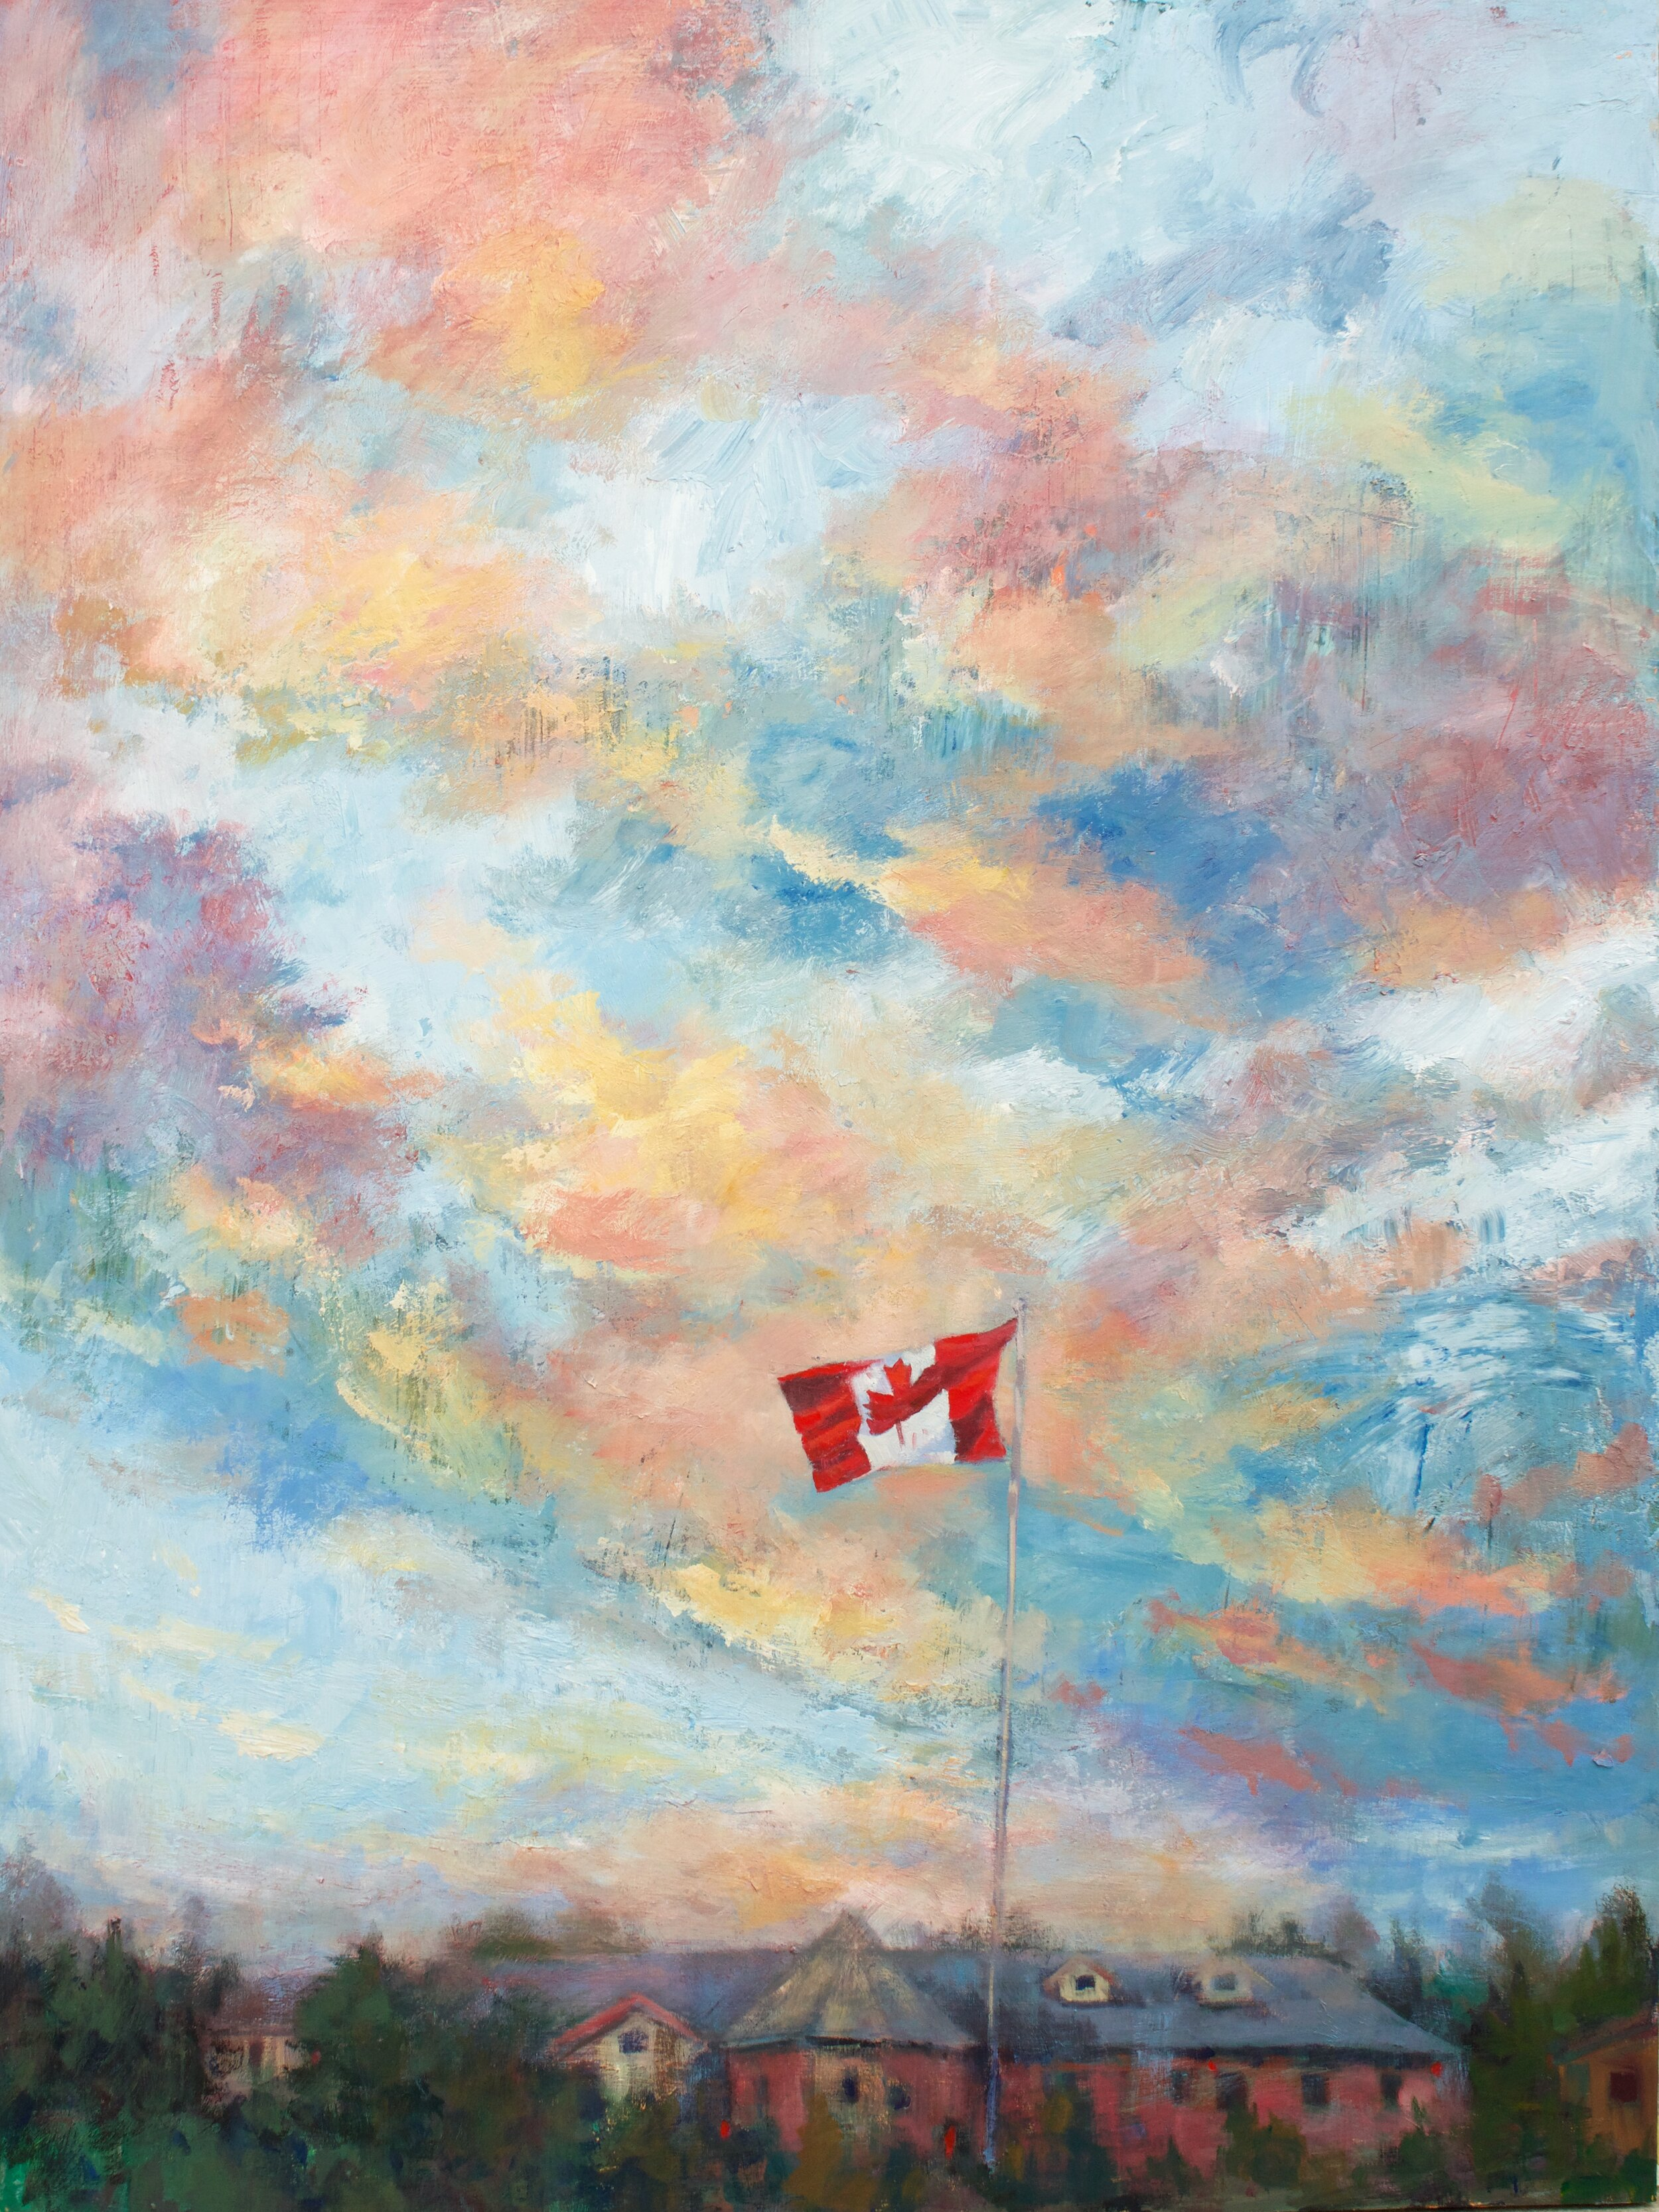 You are the sky,  your green eyes  hemmed with years  of coulees and creeks  and old prairie towns  with the most optimistic names,  tousled and dusty  with the endless secrets of the wind.      Under Canadian Skies  48 x 36 inches  Painted on Cradled Wood Panel  $3300+GST  This painting is available